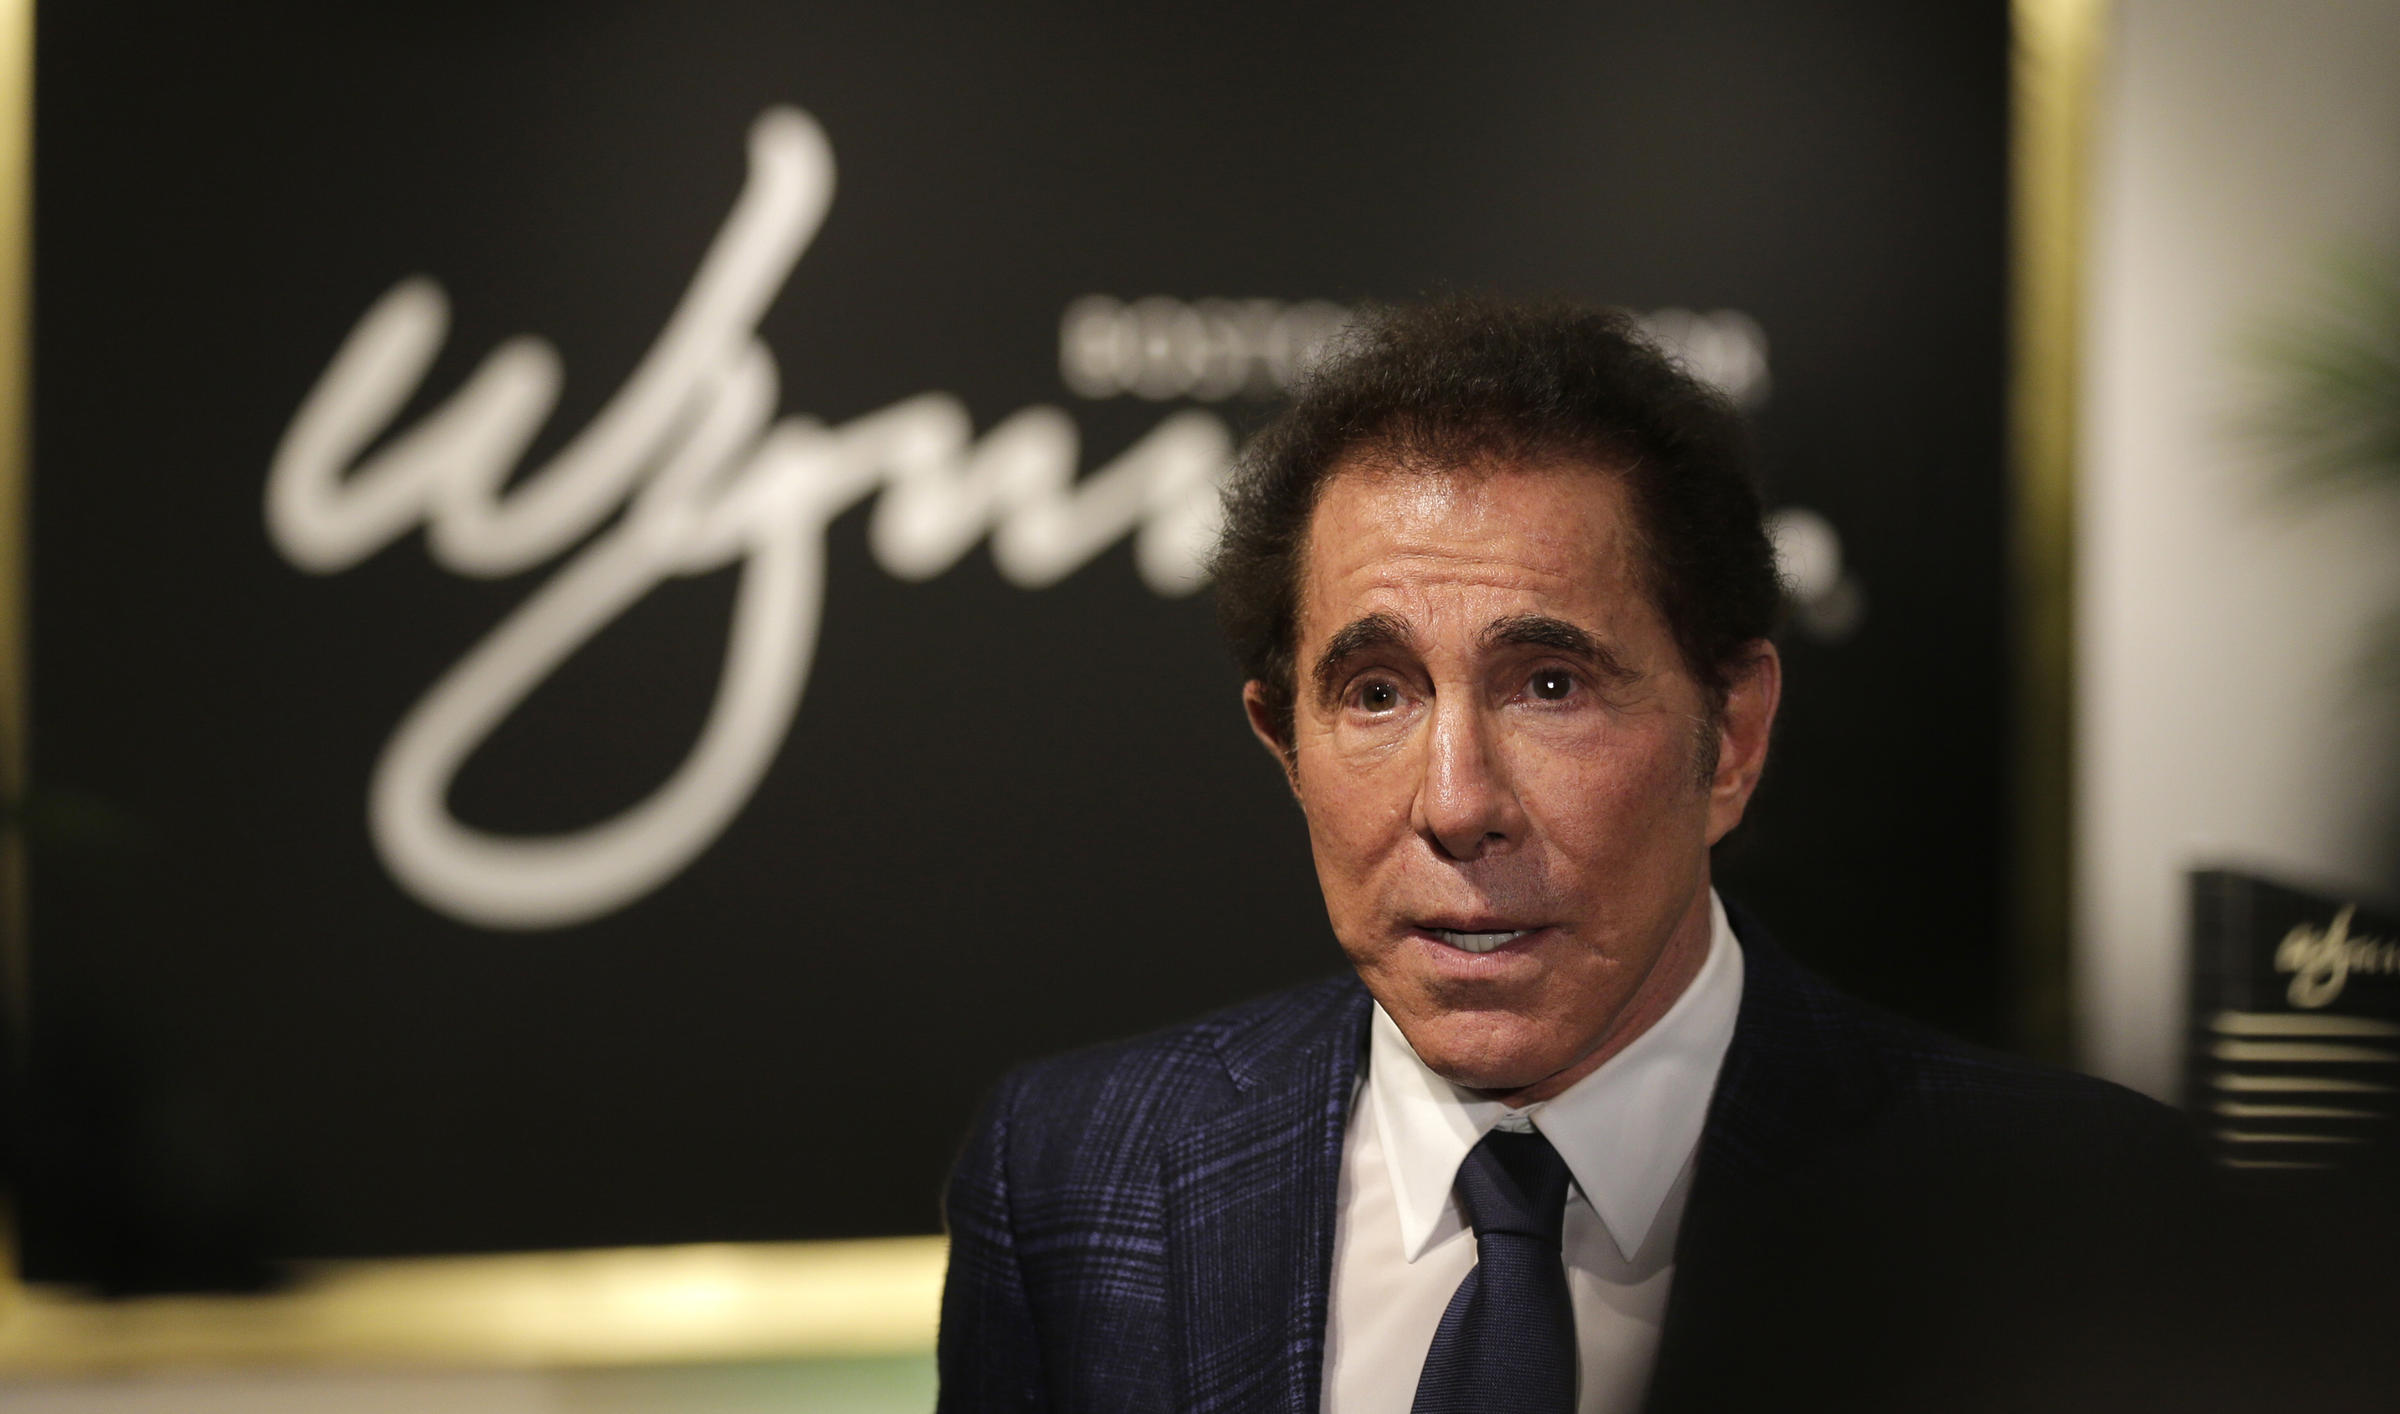 Steve Wynn has already lost hundreds of millions of dollars